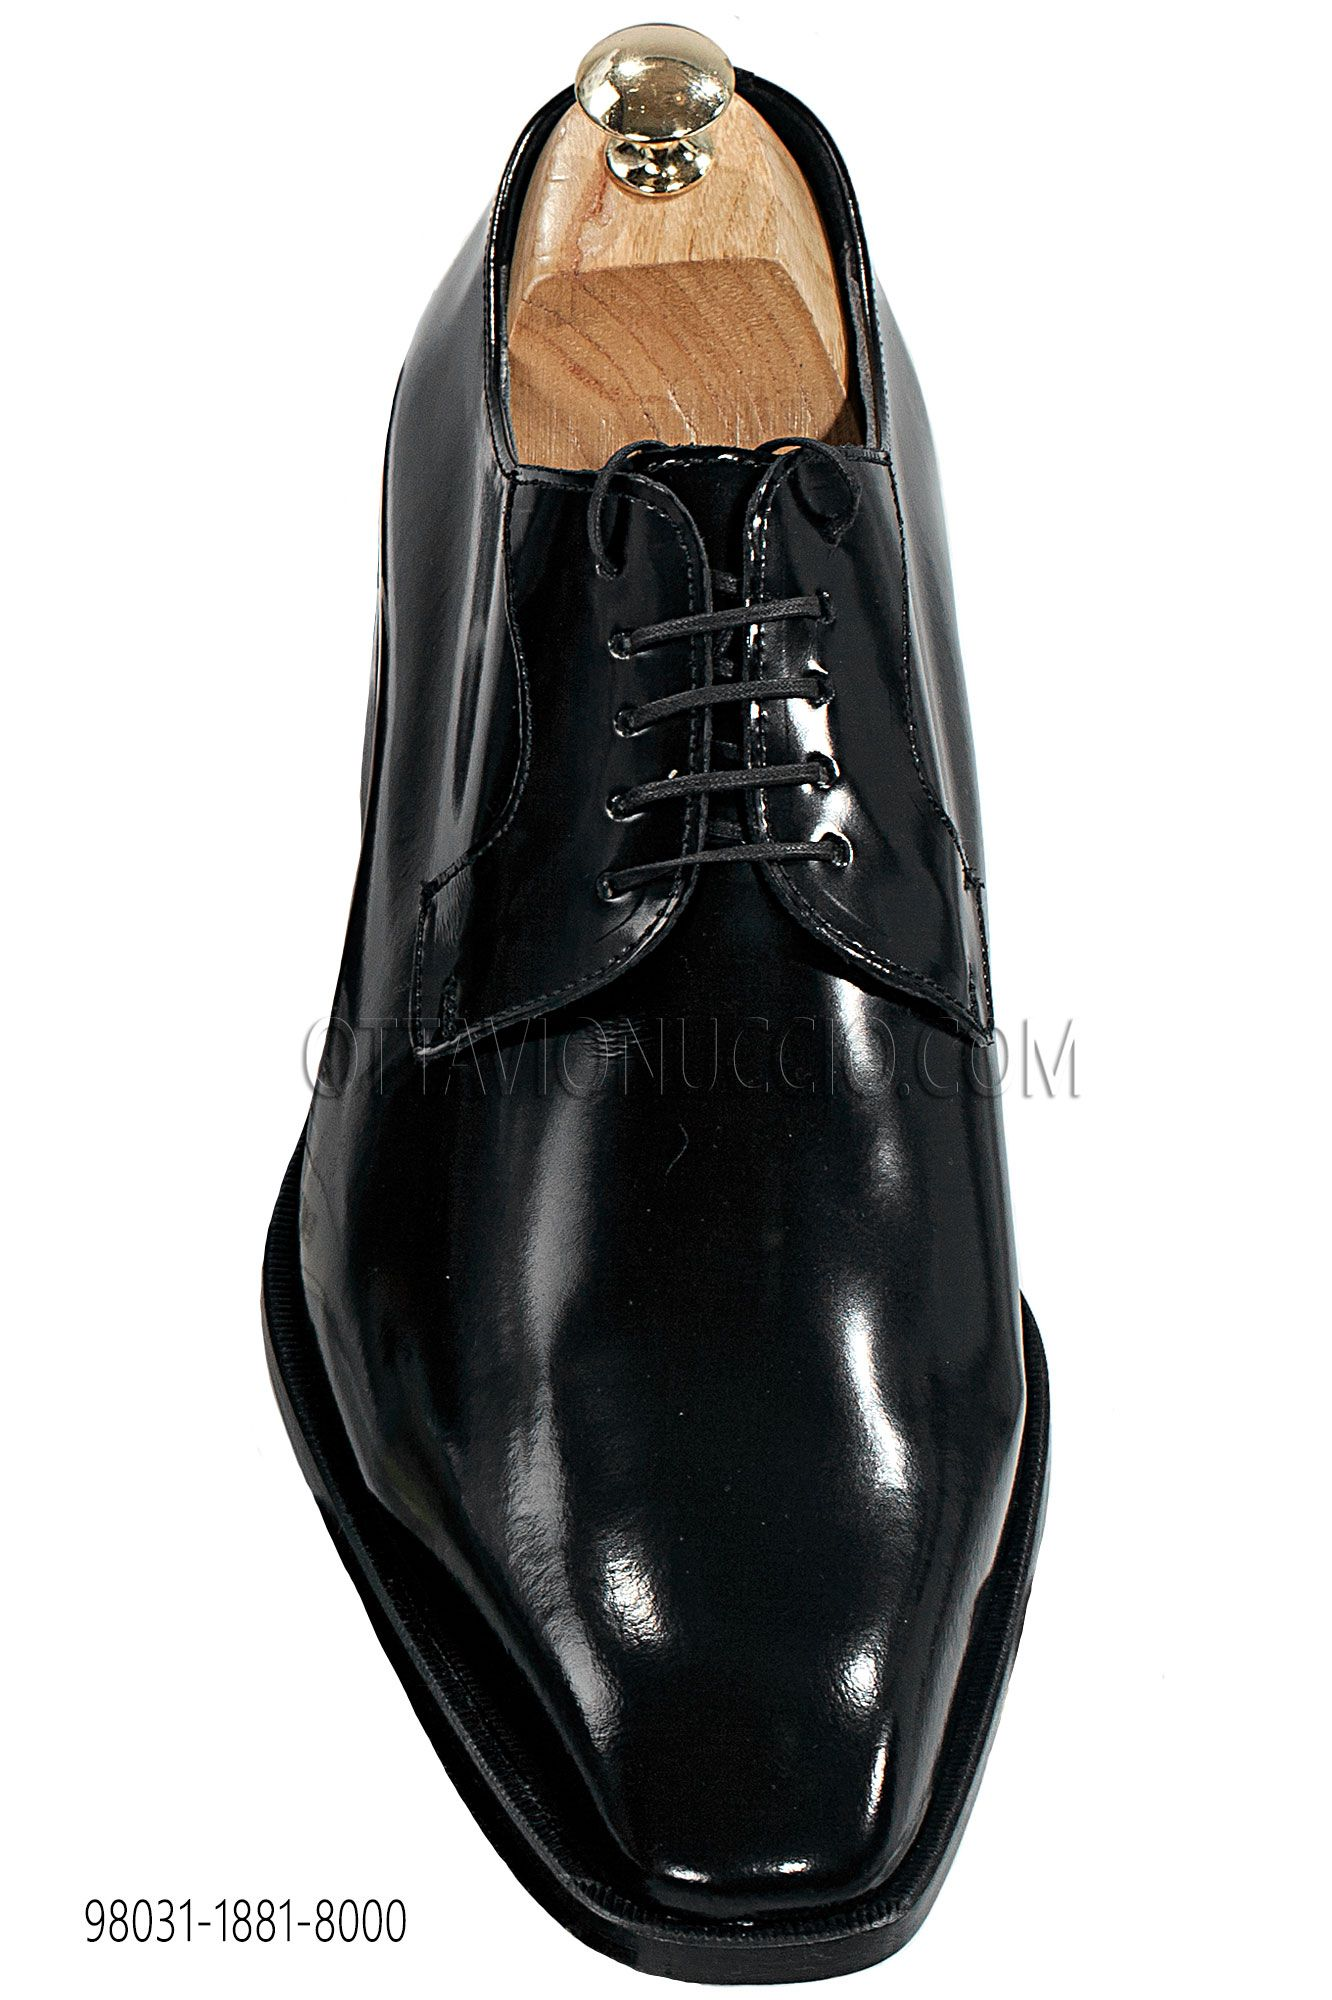 Brushed Leather Lace-Up Shoes #menswear #menstyle #groom #wedding